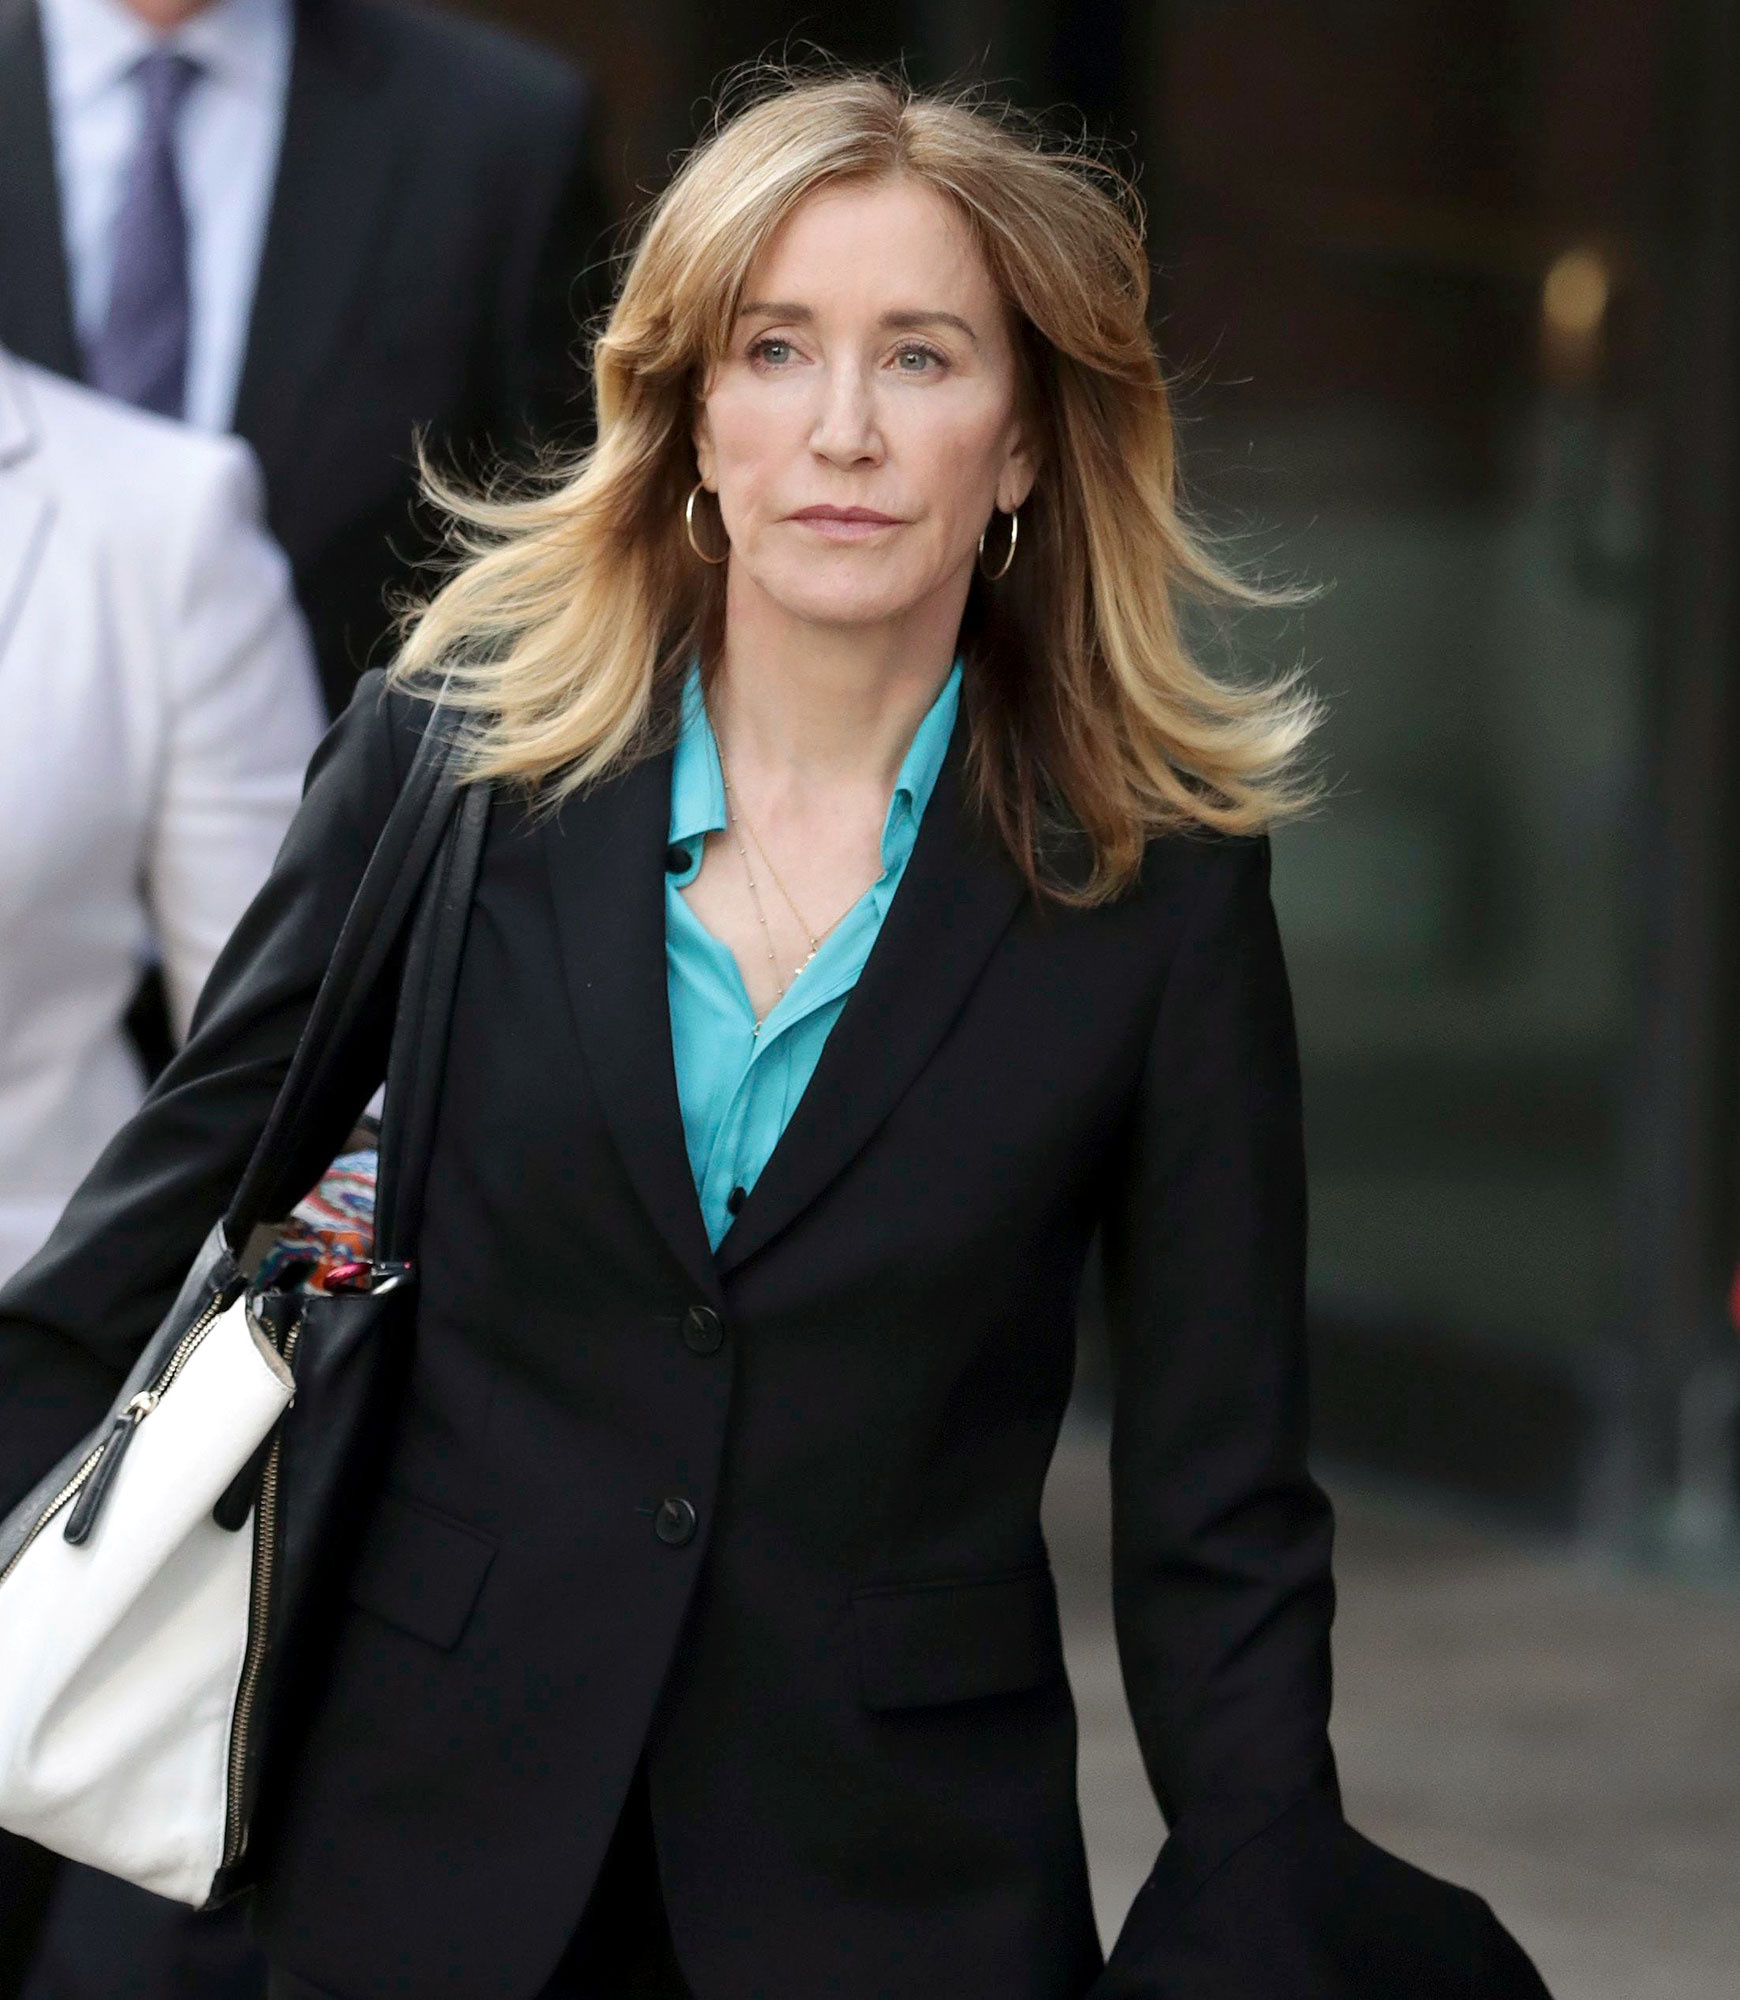 Felicity Huffman's Daughter Sophia Cried Over College Scandal